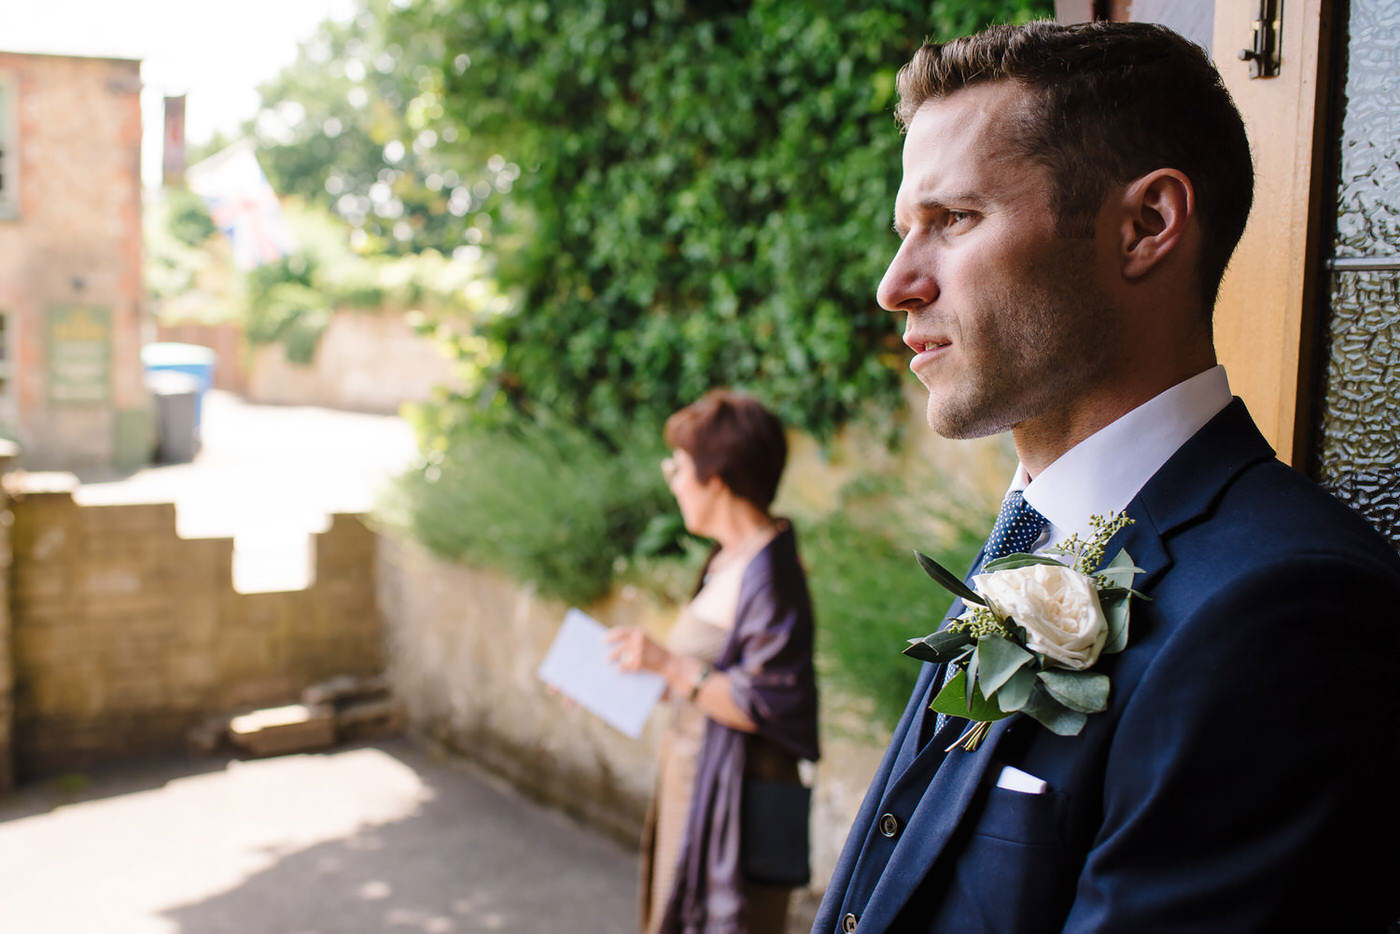 Wedding photographer Farnham